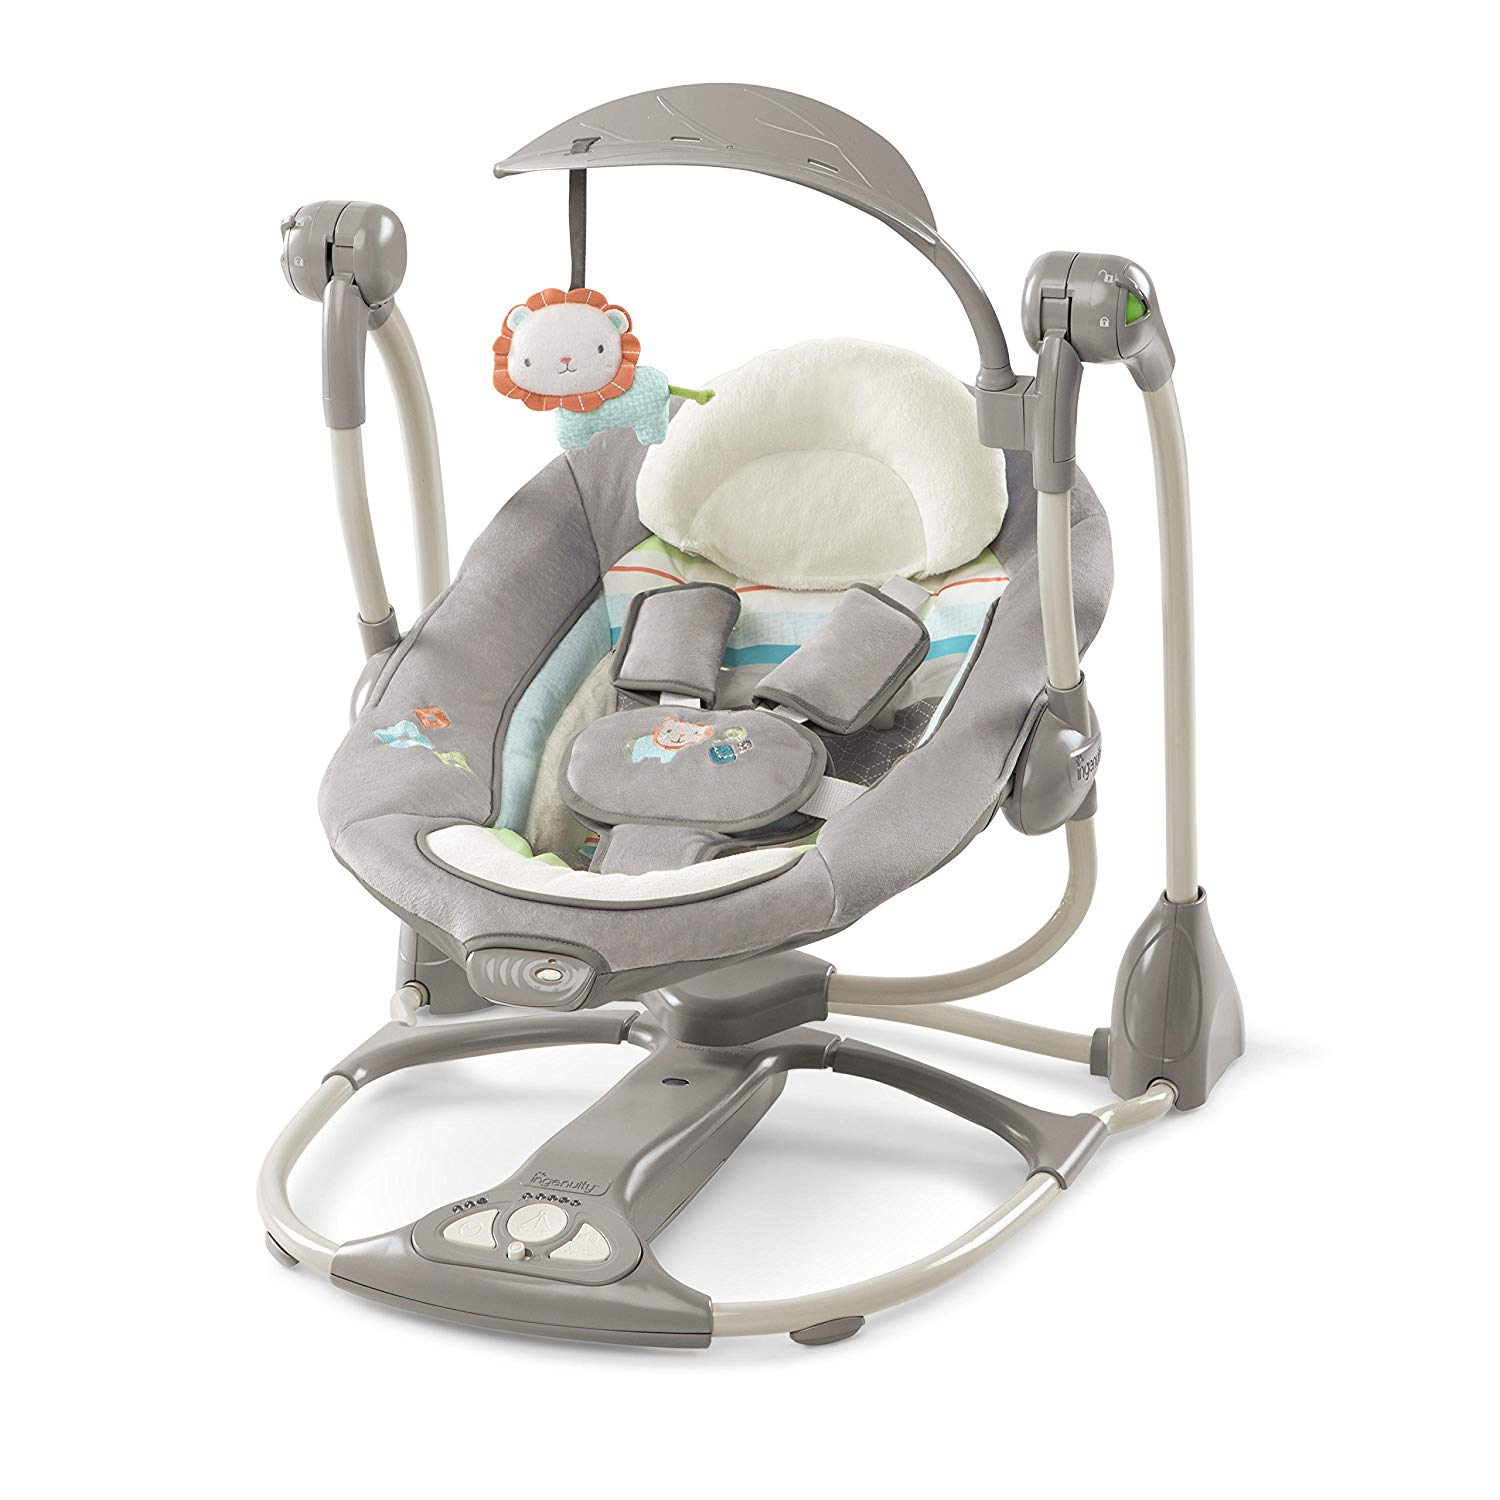 Lot 58 - Ingenuity ConvertMe Swing-2-Seat Baby Swing RRP £99.99.